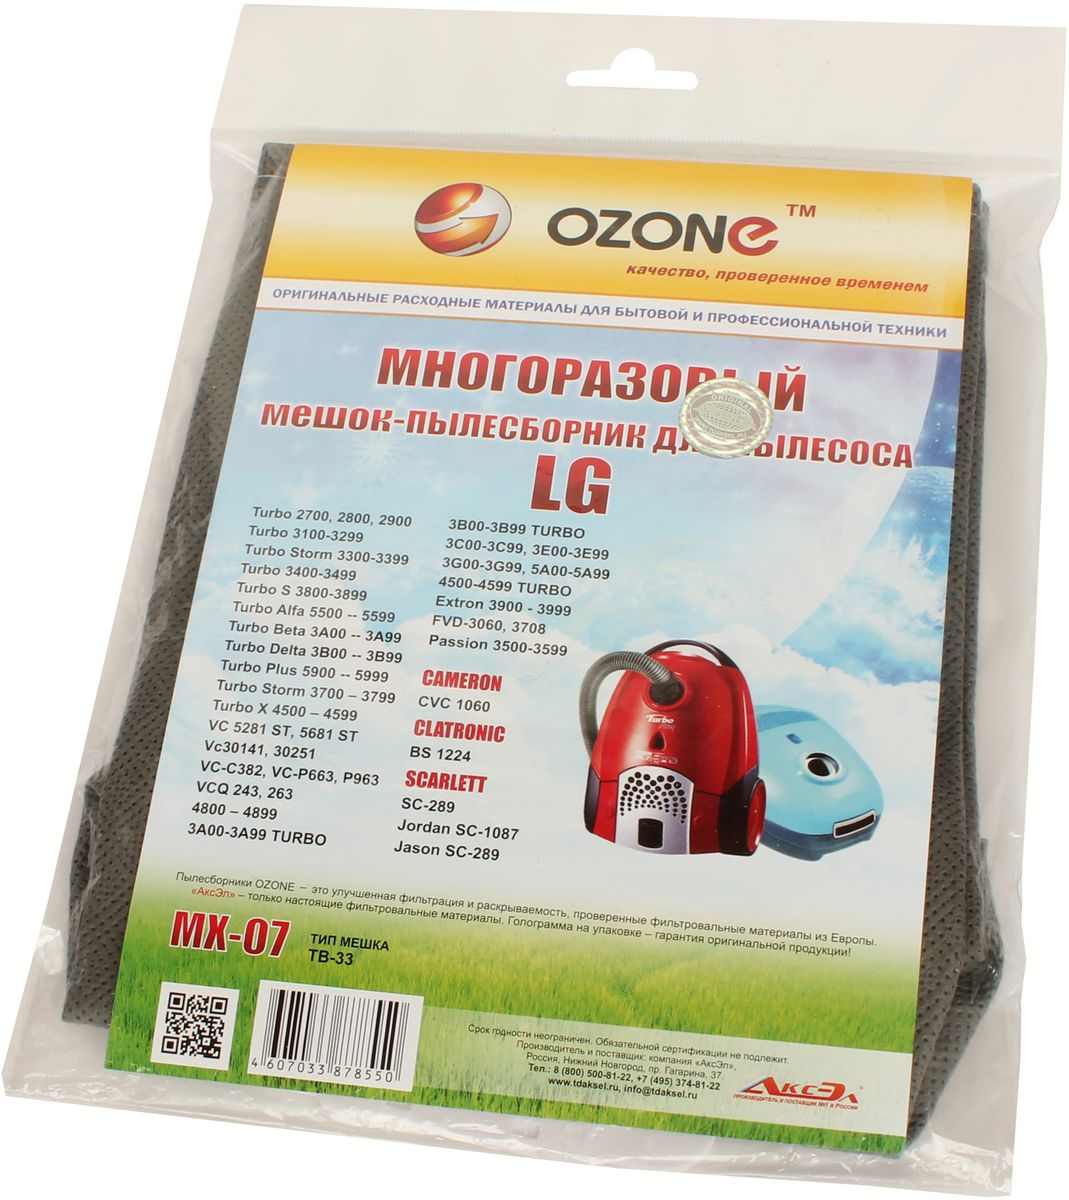 Ozone MX-07 пылесборник для пылесосов LG 12vdc 5000mg h efficient water treatment ozone generator ozone disinfection kit